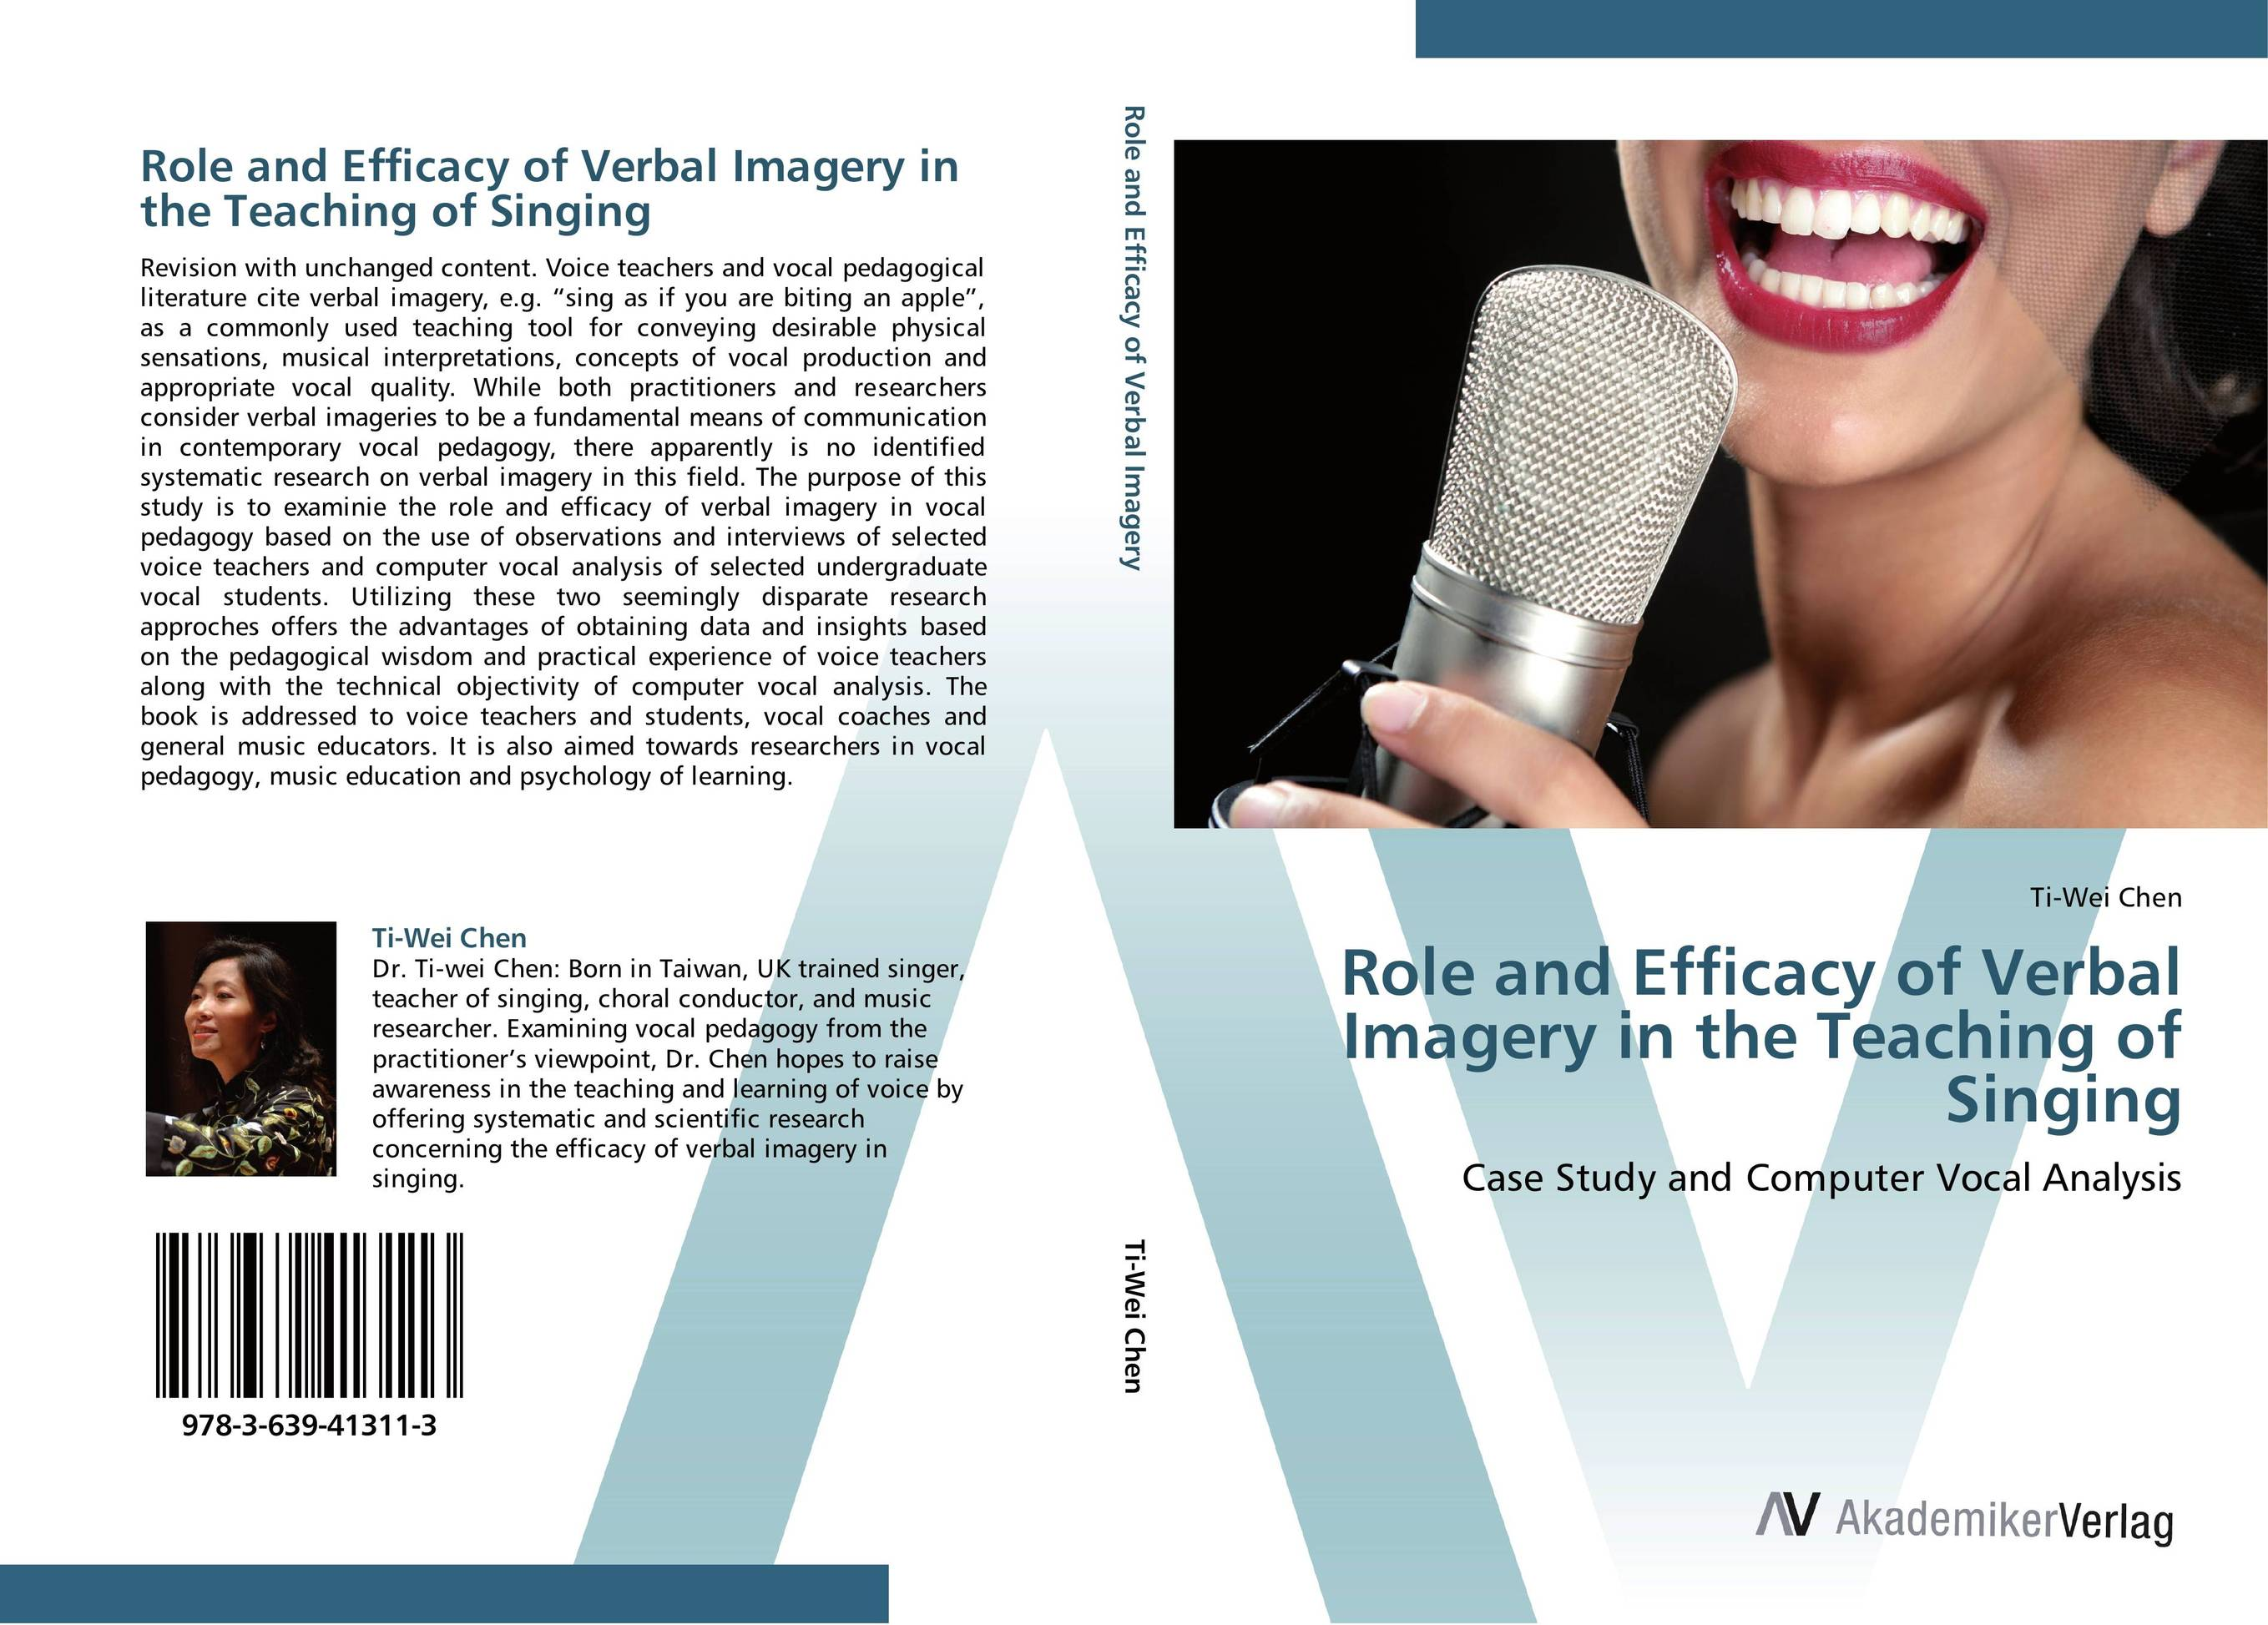 Role and Efficacy of Verbal Imagery in the Teaching of Singing cite marilou